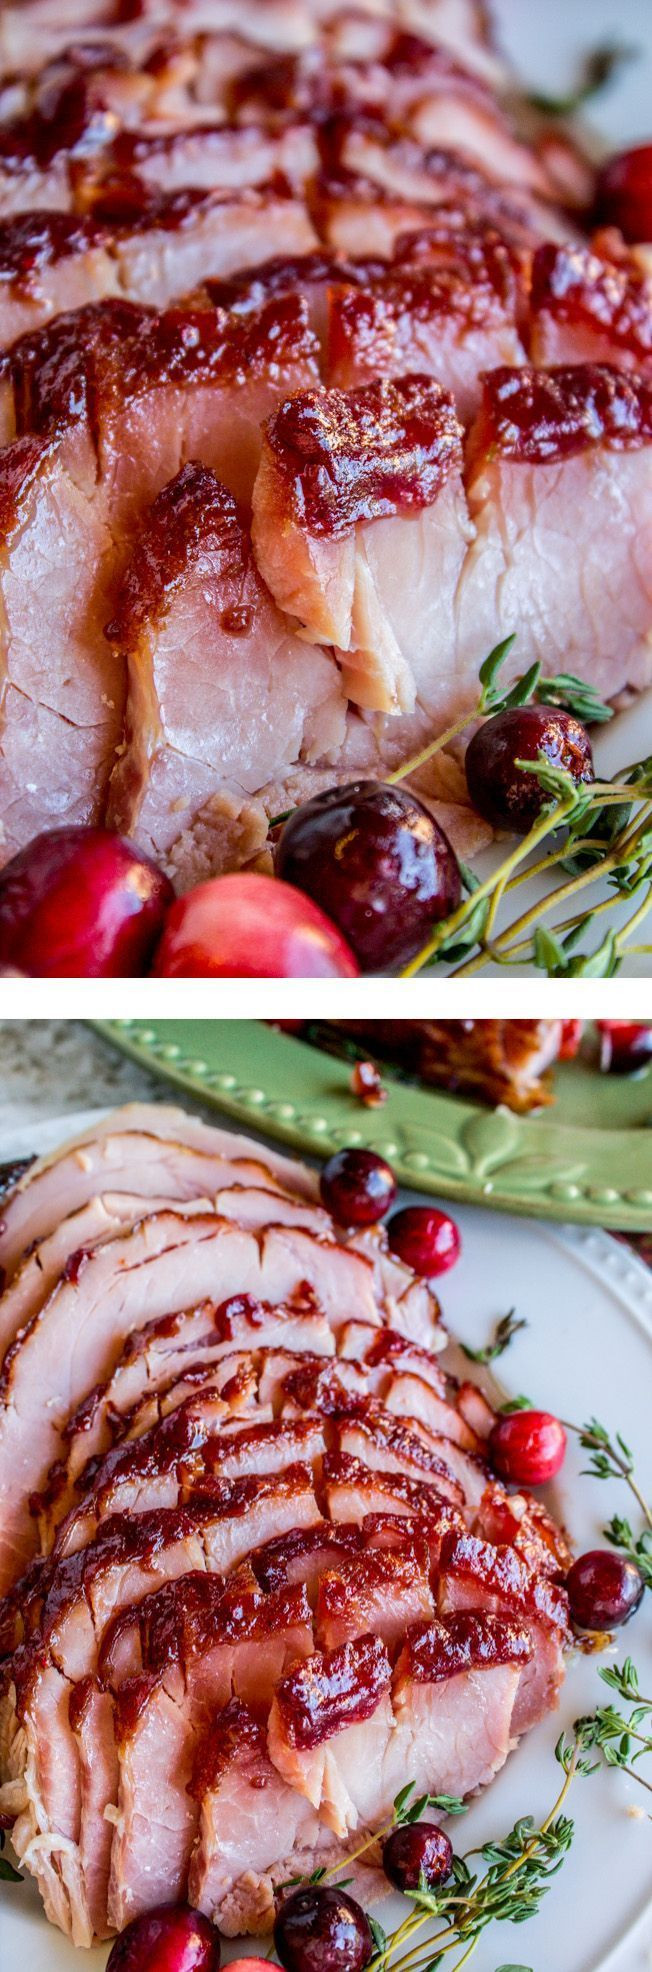 Thanksgiving Ham Glaze Recipes  100 Baked Ham Recipes on Pinterest